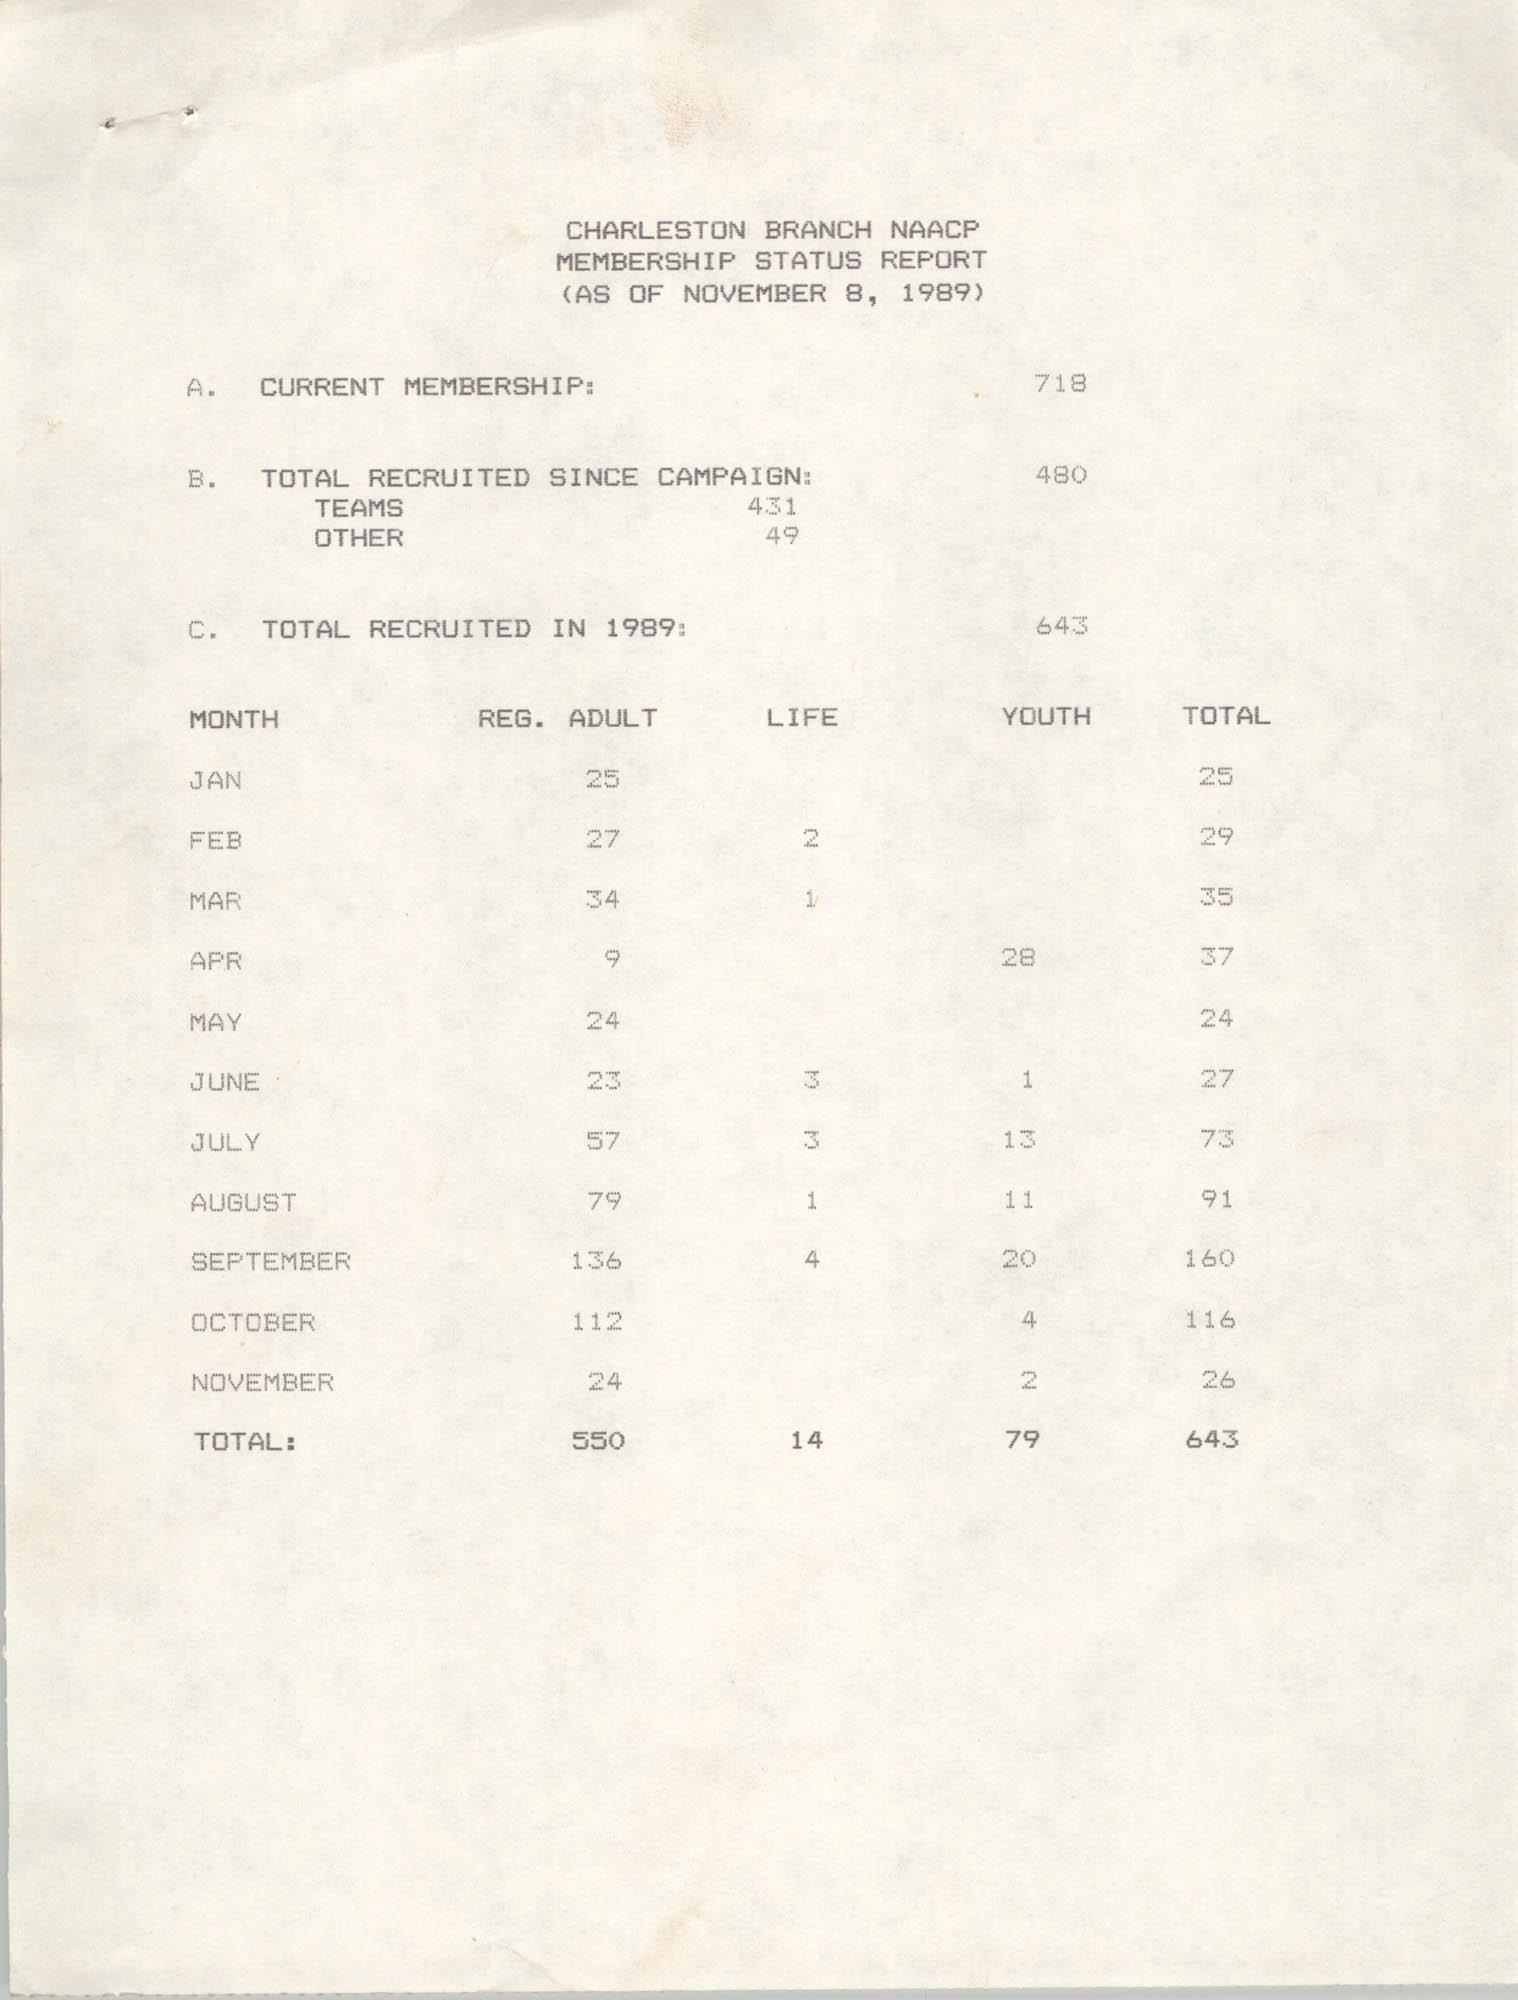 Membership Status Report, National Association for the Advancement of Colored People, November 8, 1989